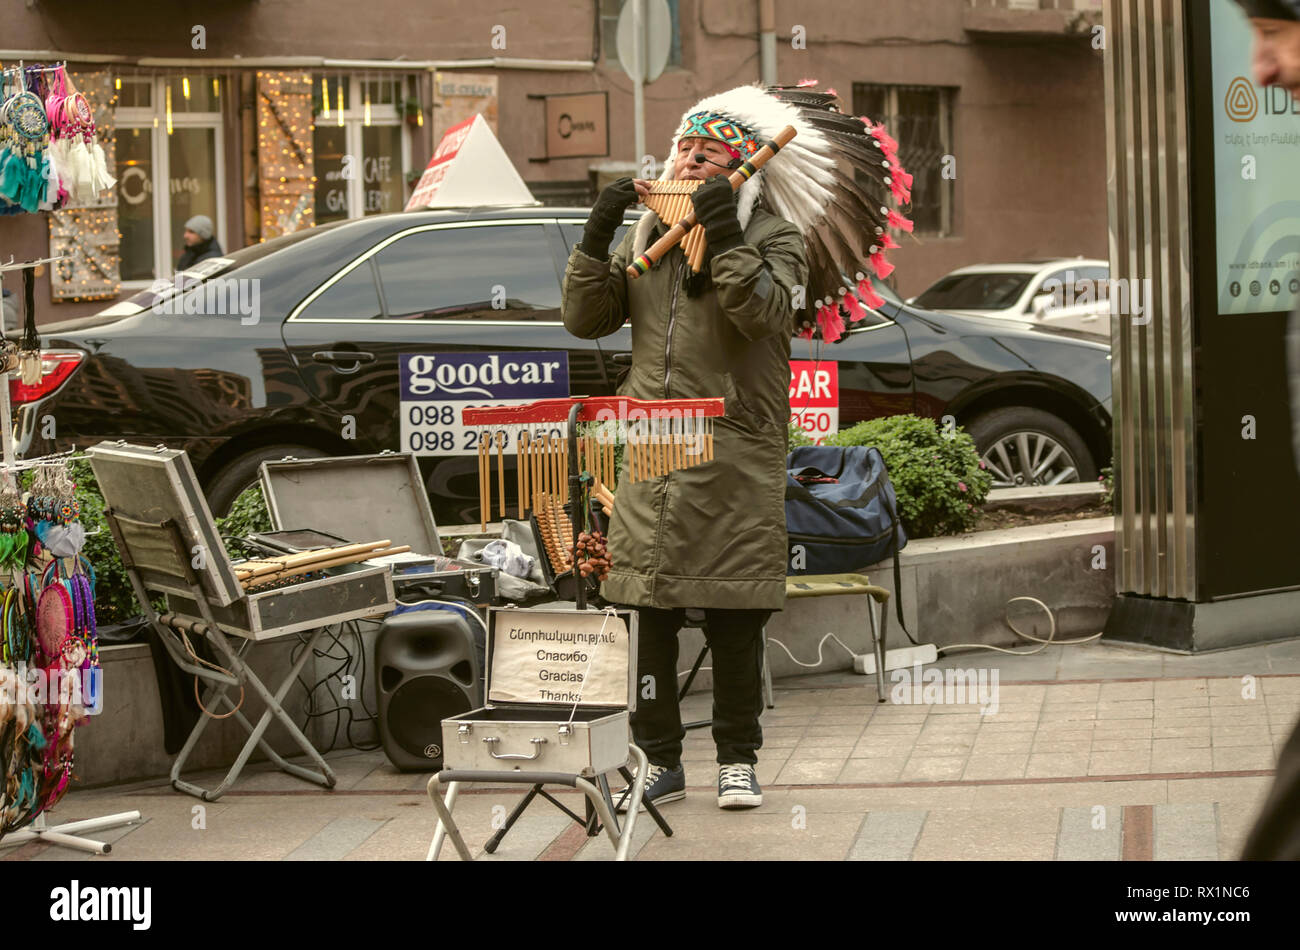 Yerevan,Armenia,December 03,2018:On Yerevan street, a middle-aged man in a feather headdress plays a pan flute melody with ethnic Peruvian motifs - Stock Image